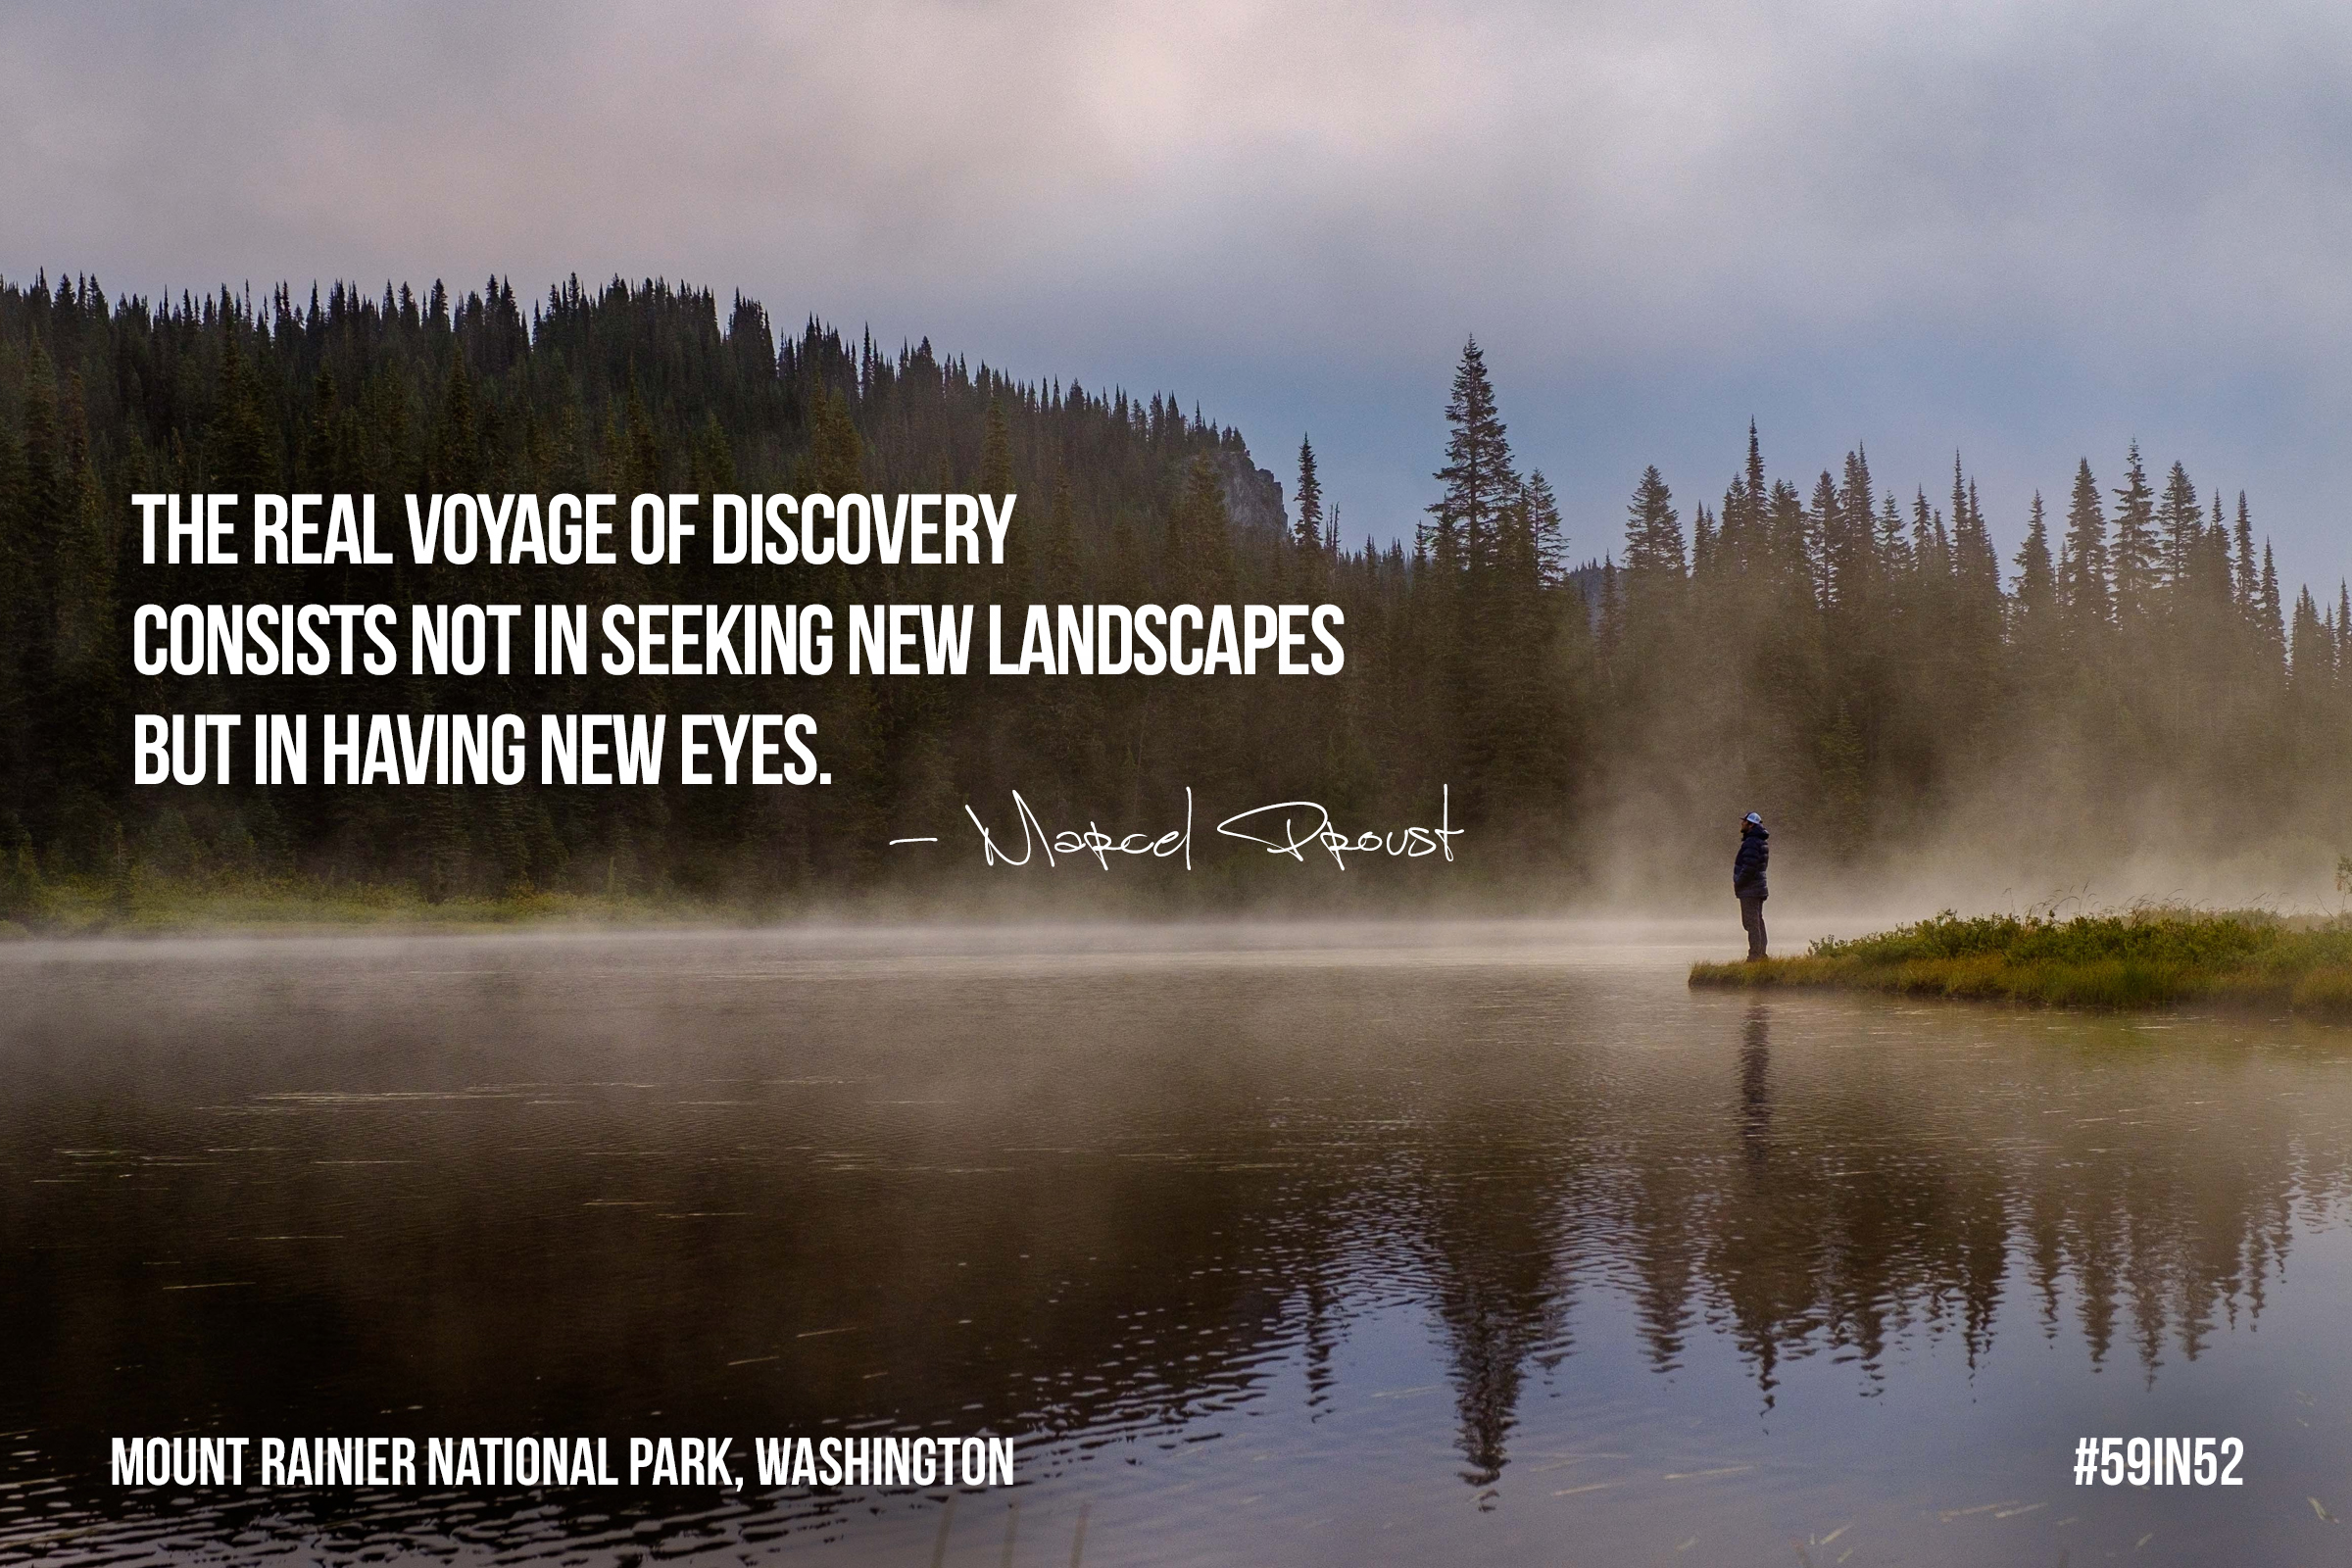 'The real voyage of discovery consists not in seeing new landscapes but in having new eyes.' - Marcel Proust